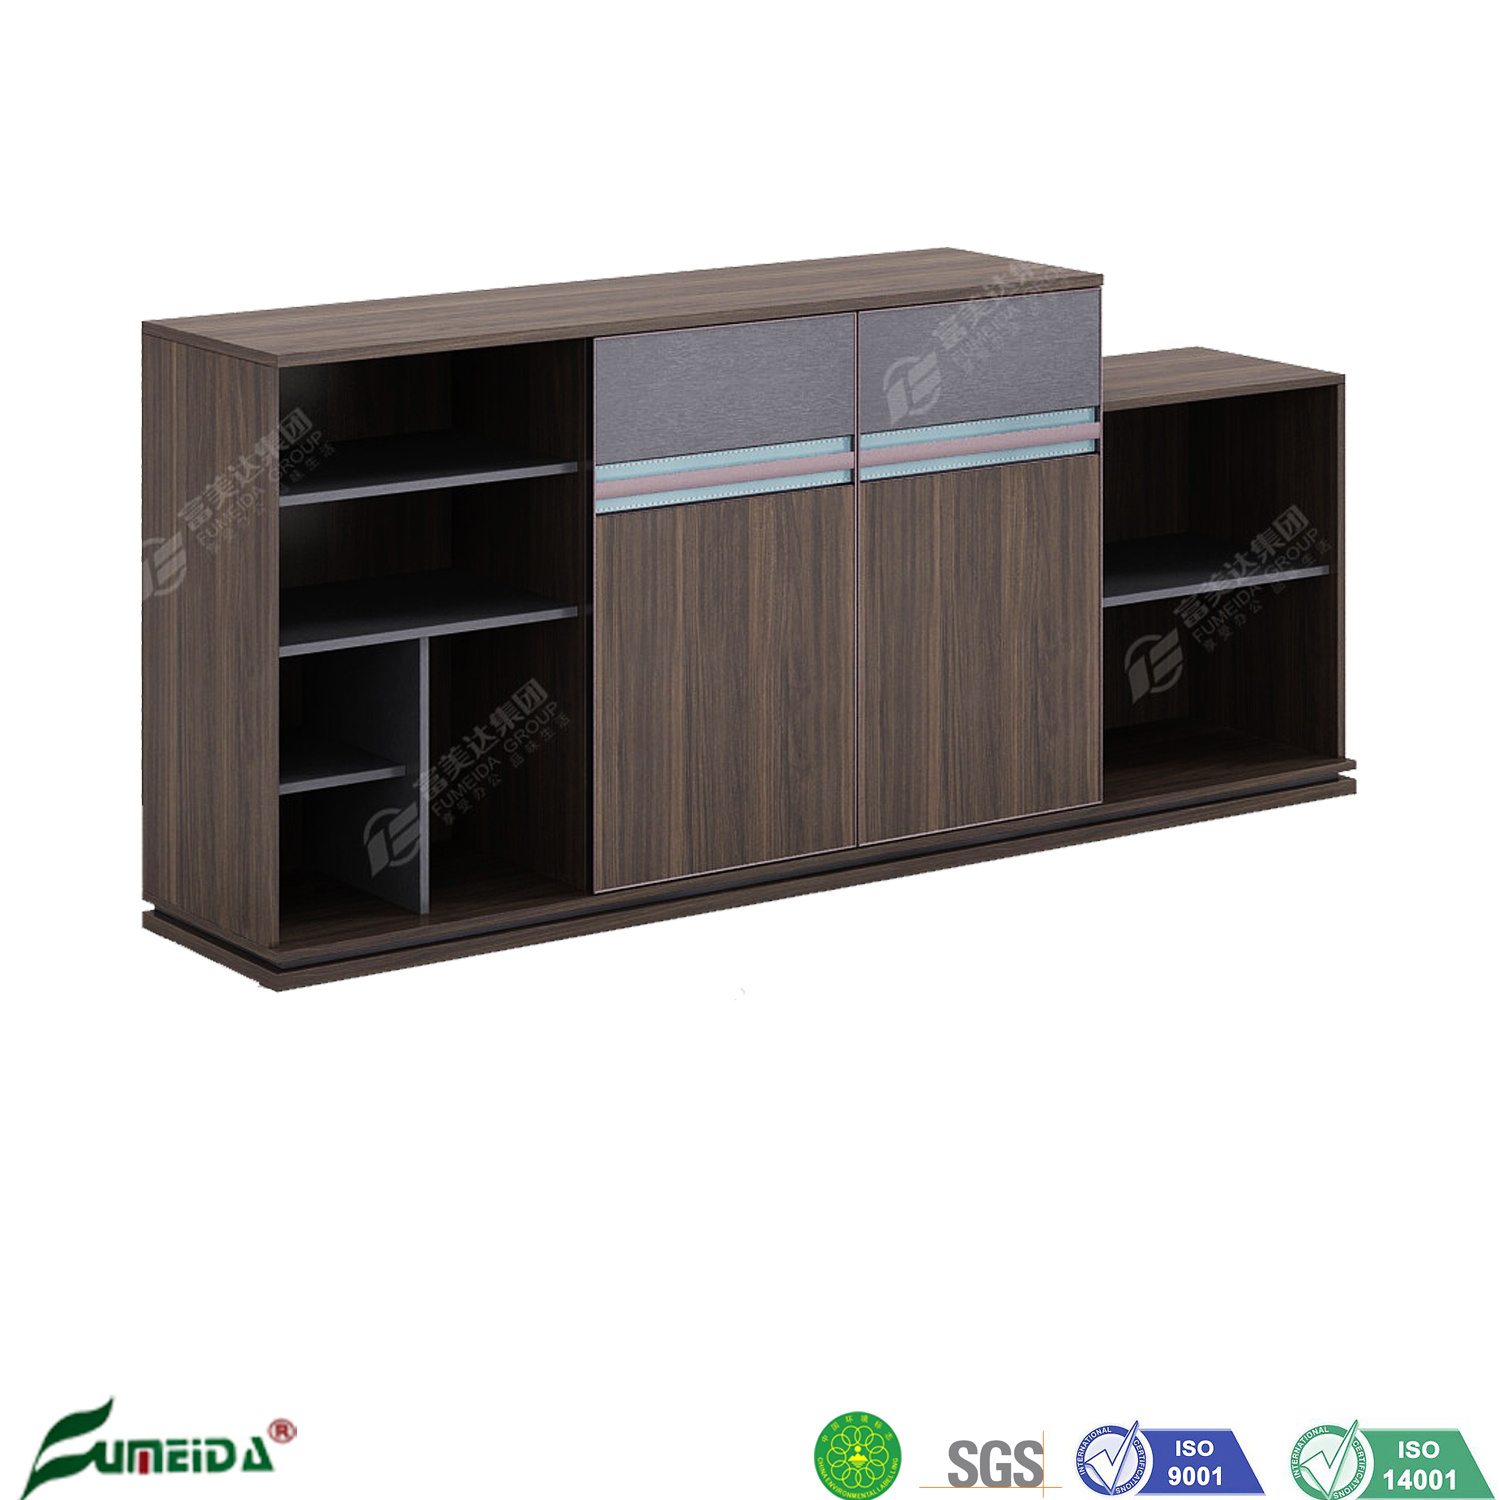 China Manufacturer Small Wooden Office Storage Cabinets File Cupboard China File Cupboard Storage Cabinet